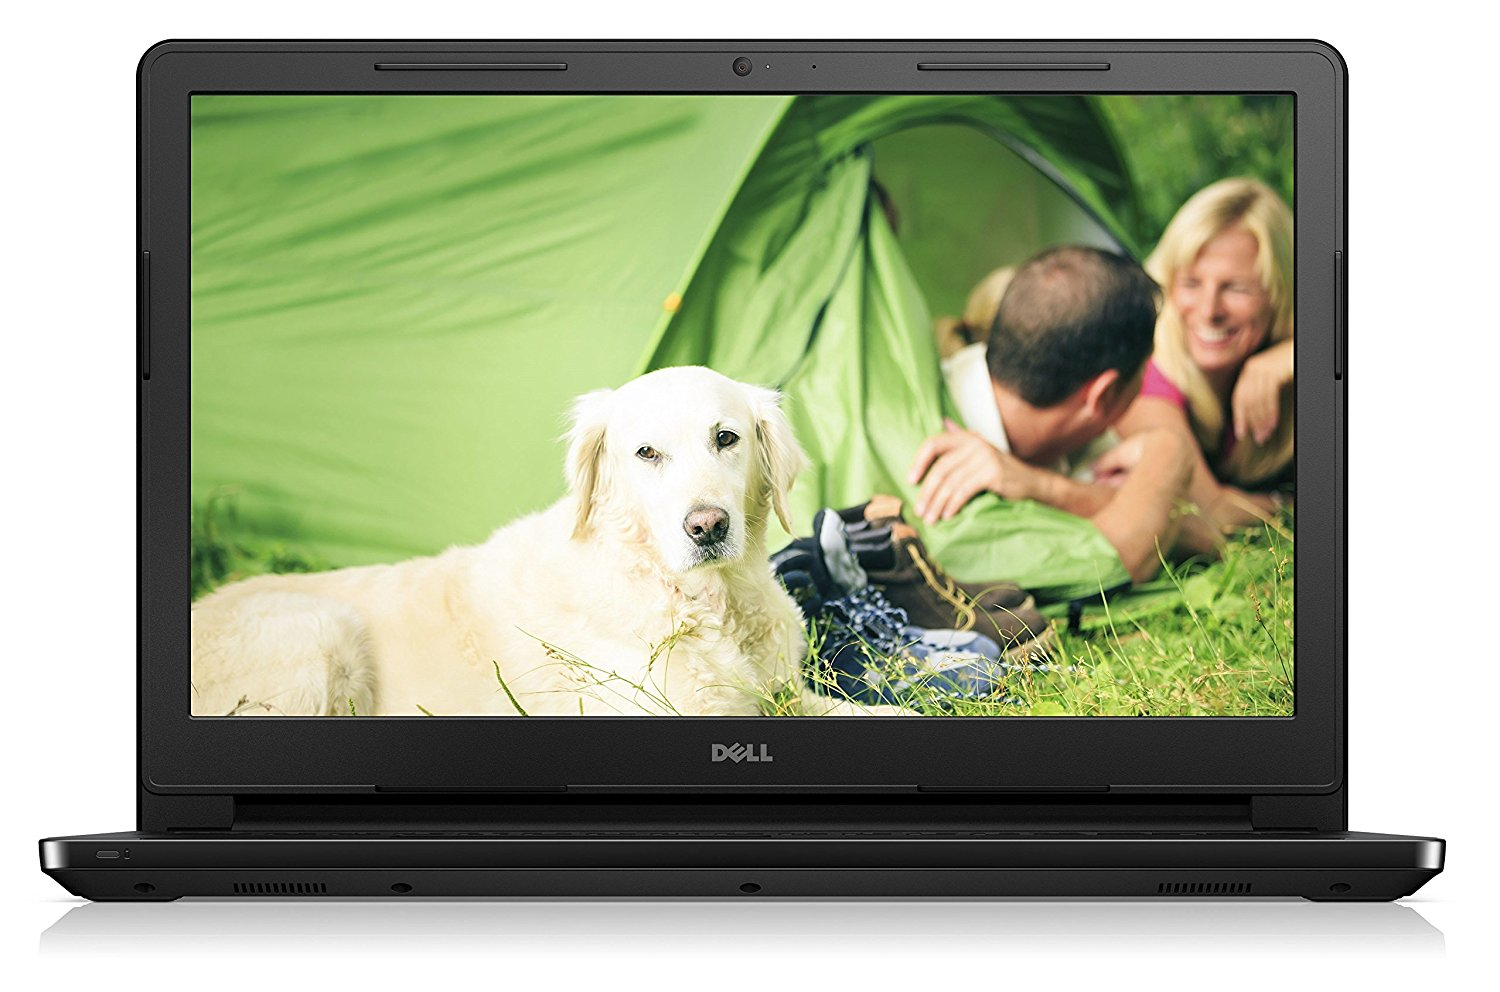 Dell Inspiron 15 3000 15.6-inch HD Laptop for £368.46